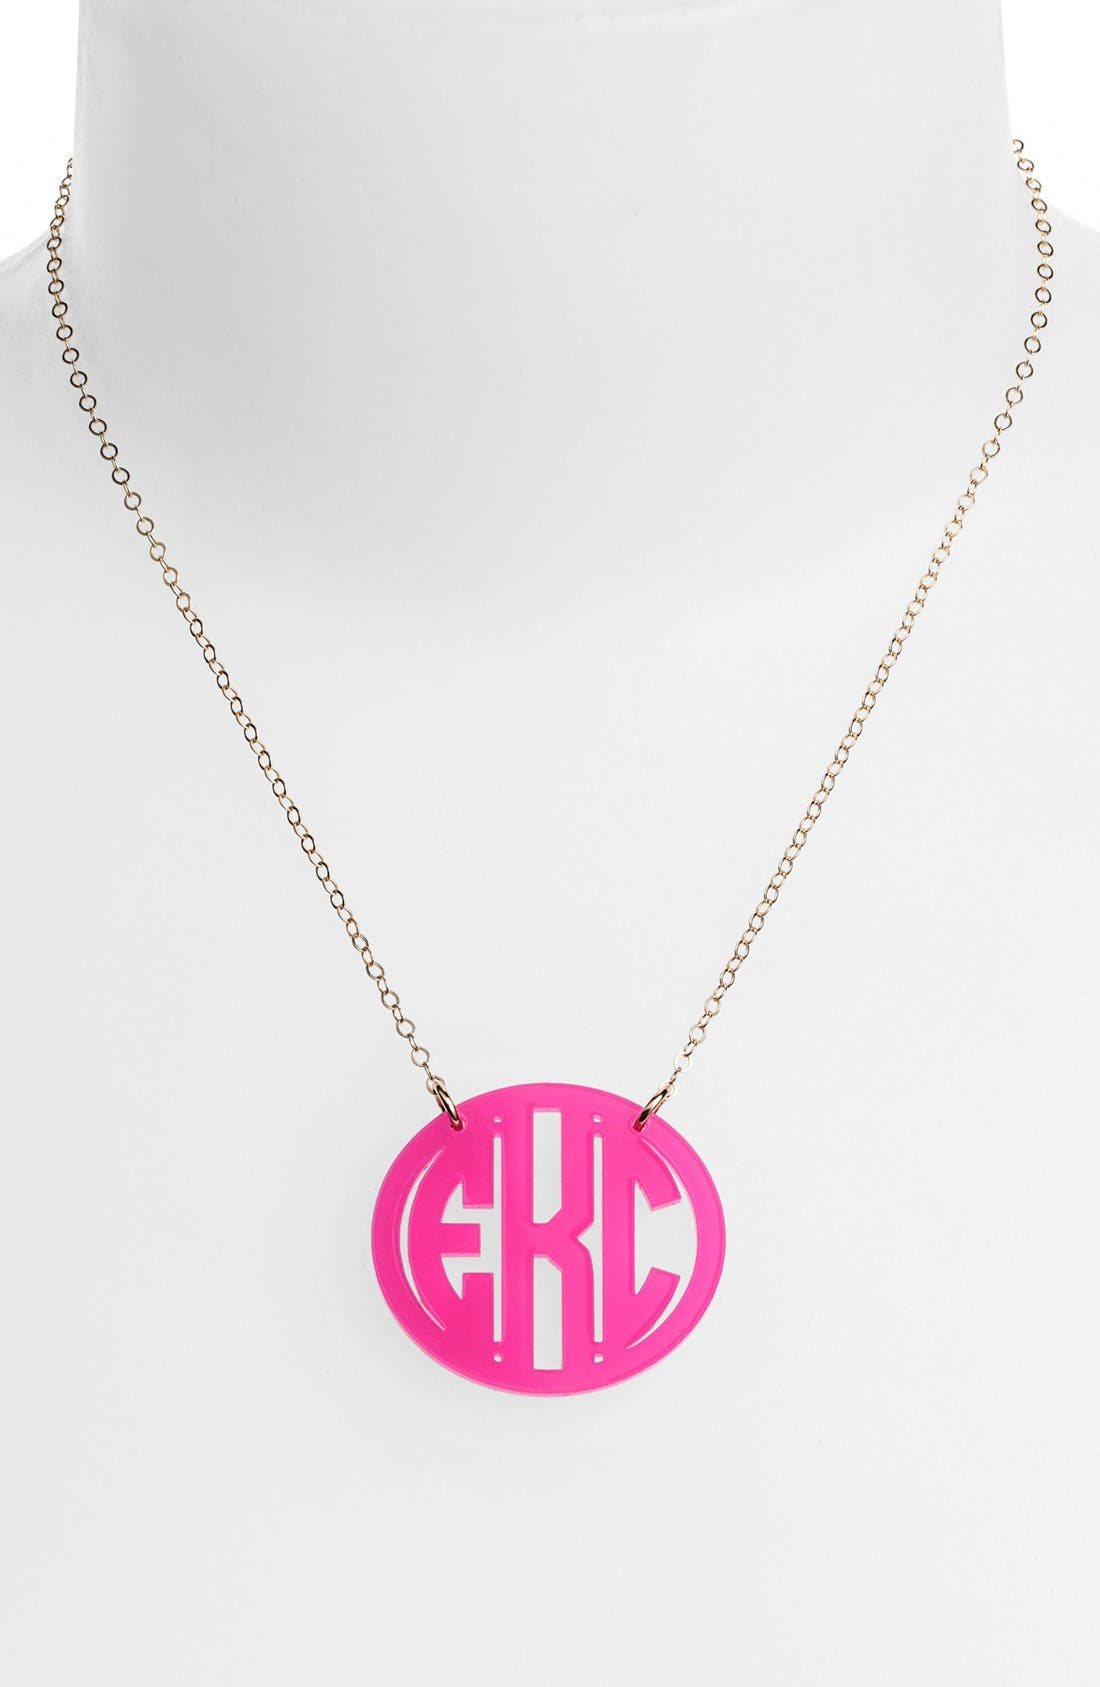 Medium Oval Personalized Monogram Pendant Necklace,                         Main,                         color, 670